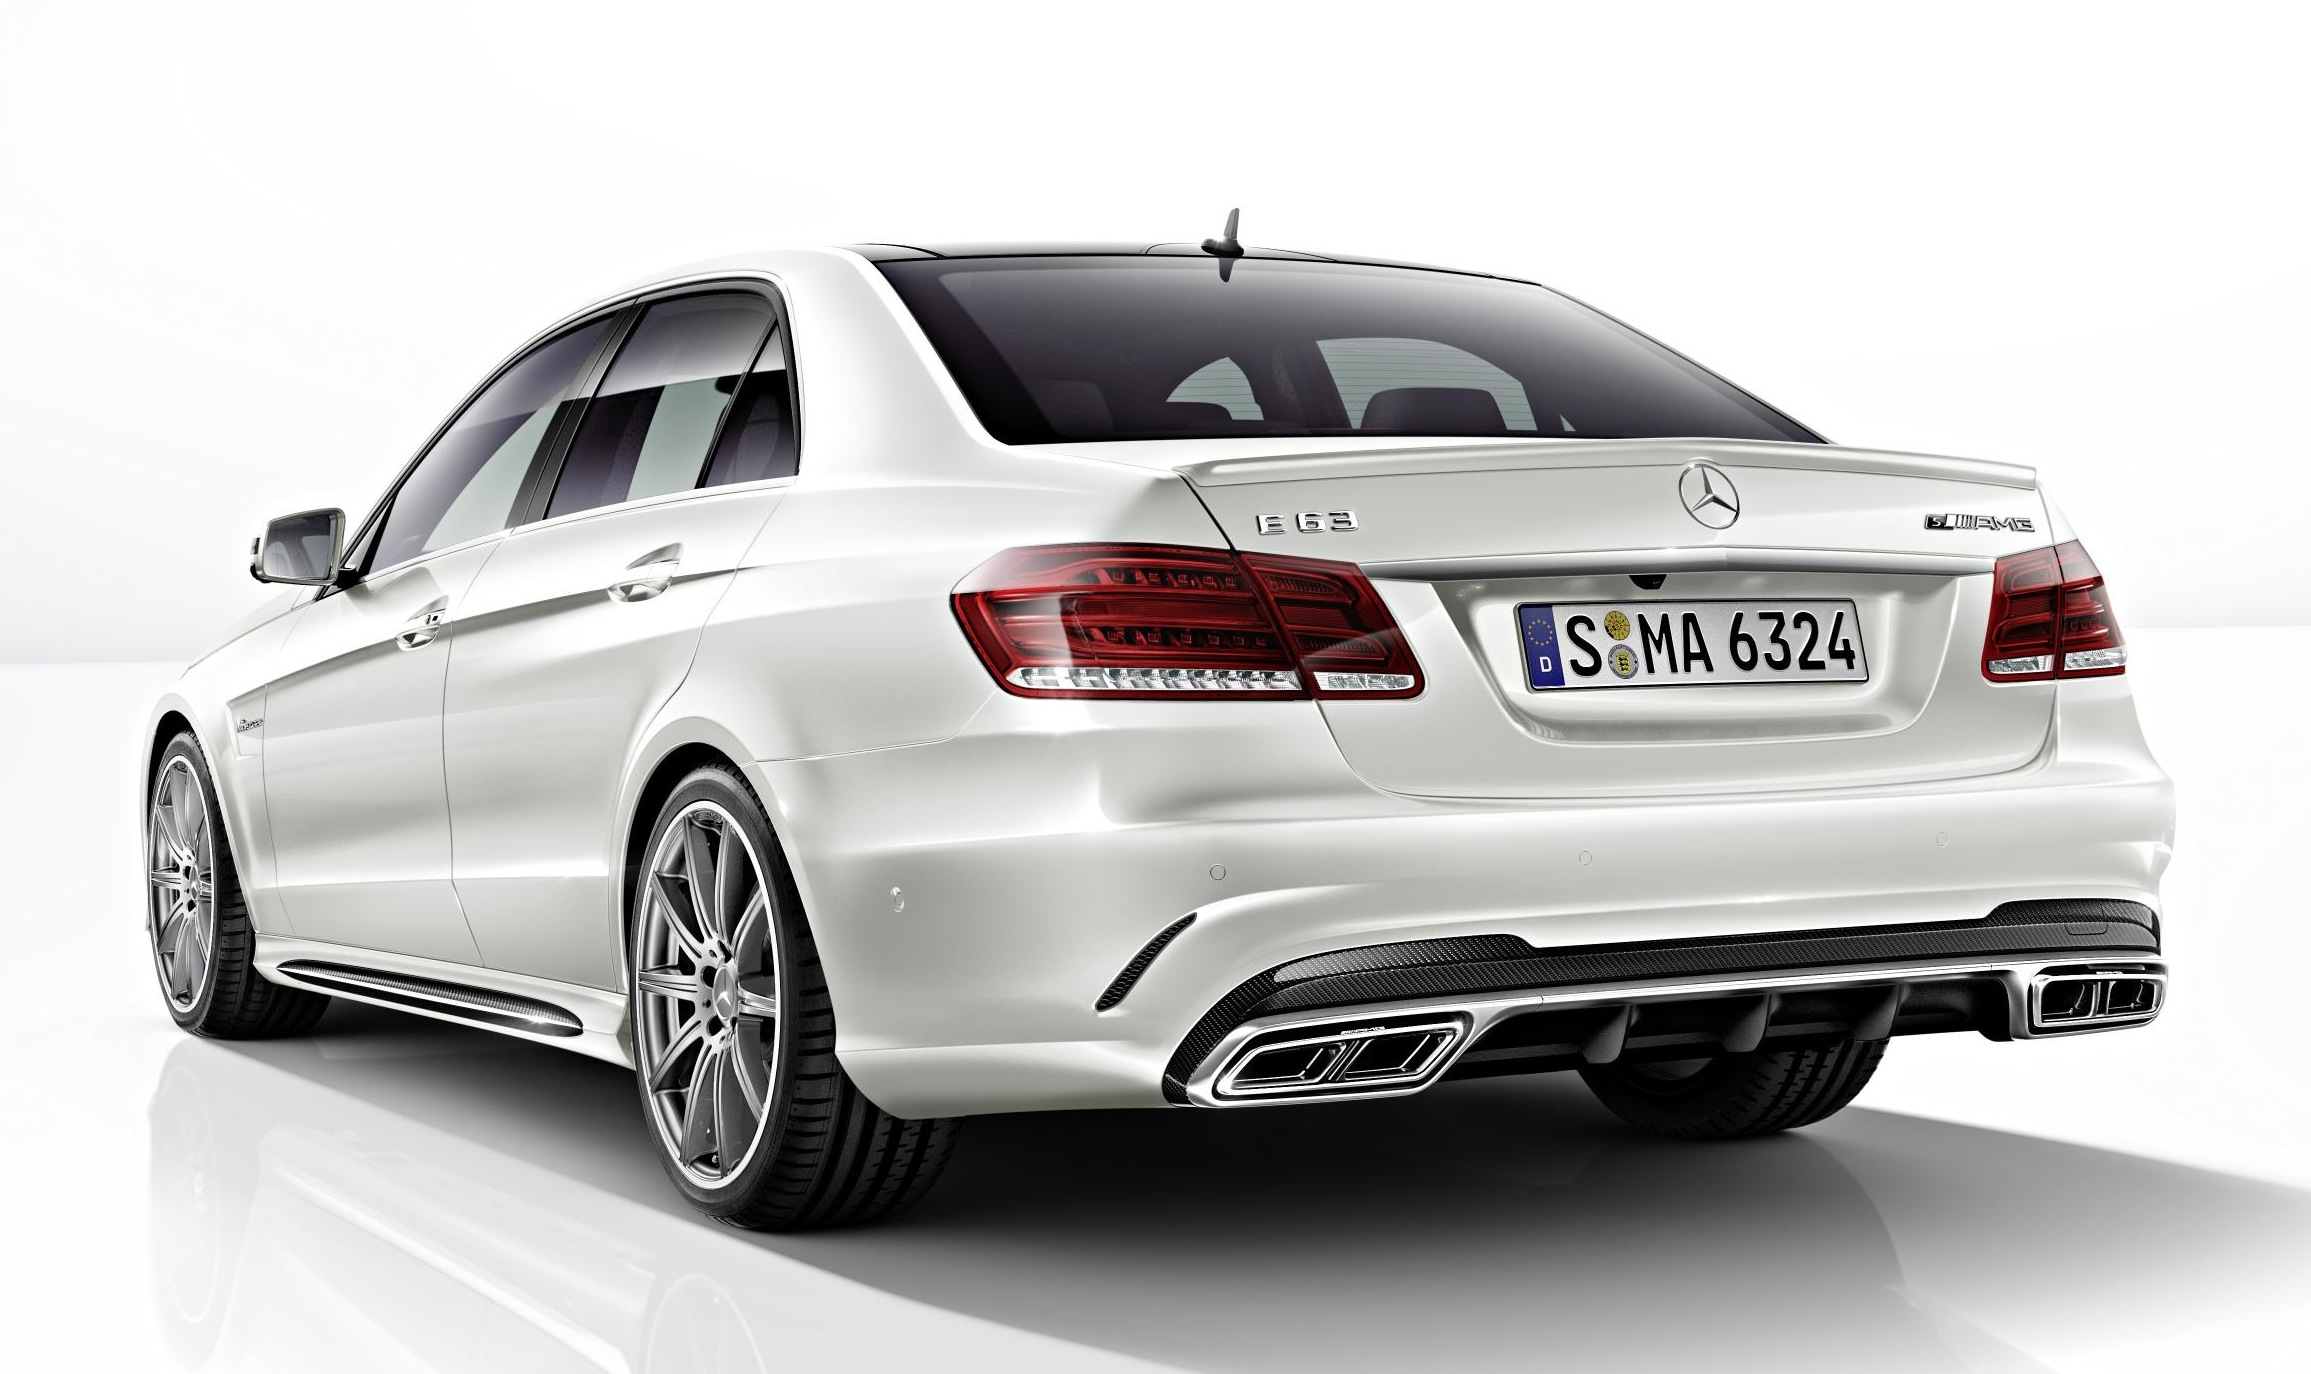 mercedes benz e 63 amg range topping s model run begins from june. Black Bedroom Furniture Sets. Home Design Ideas